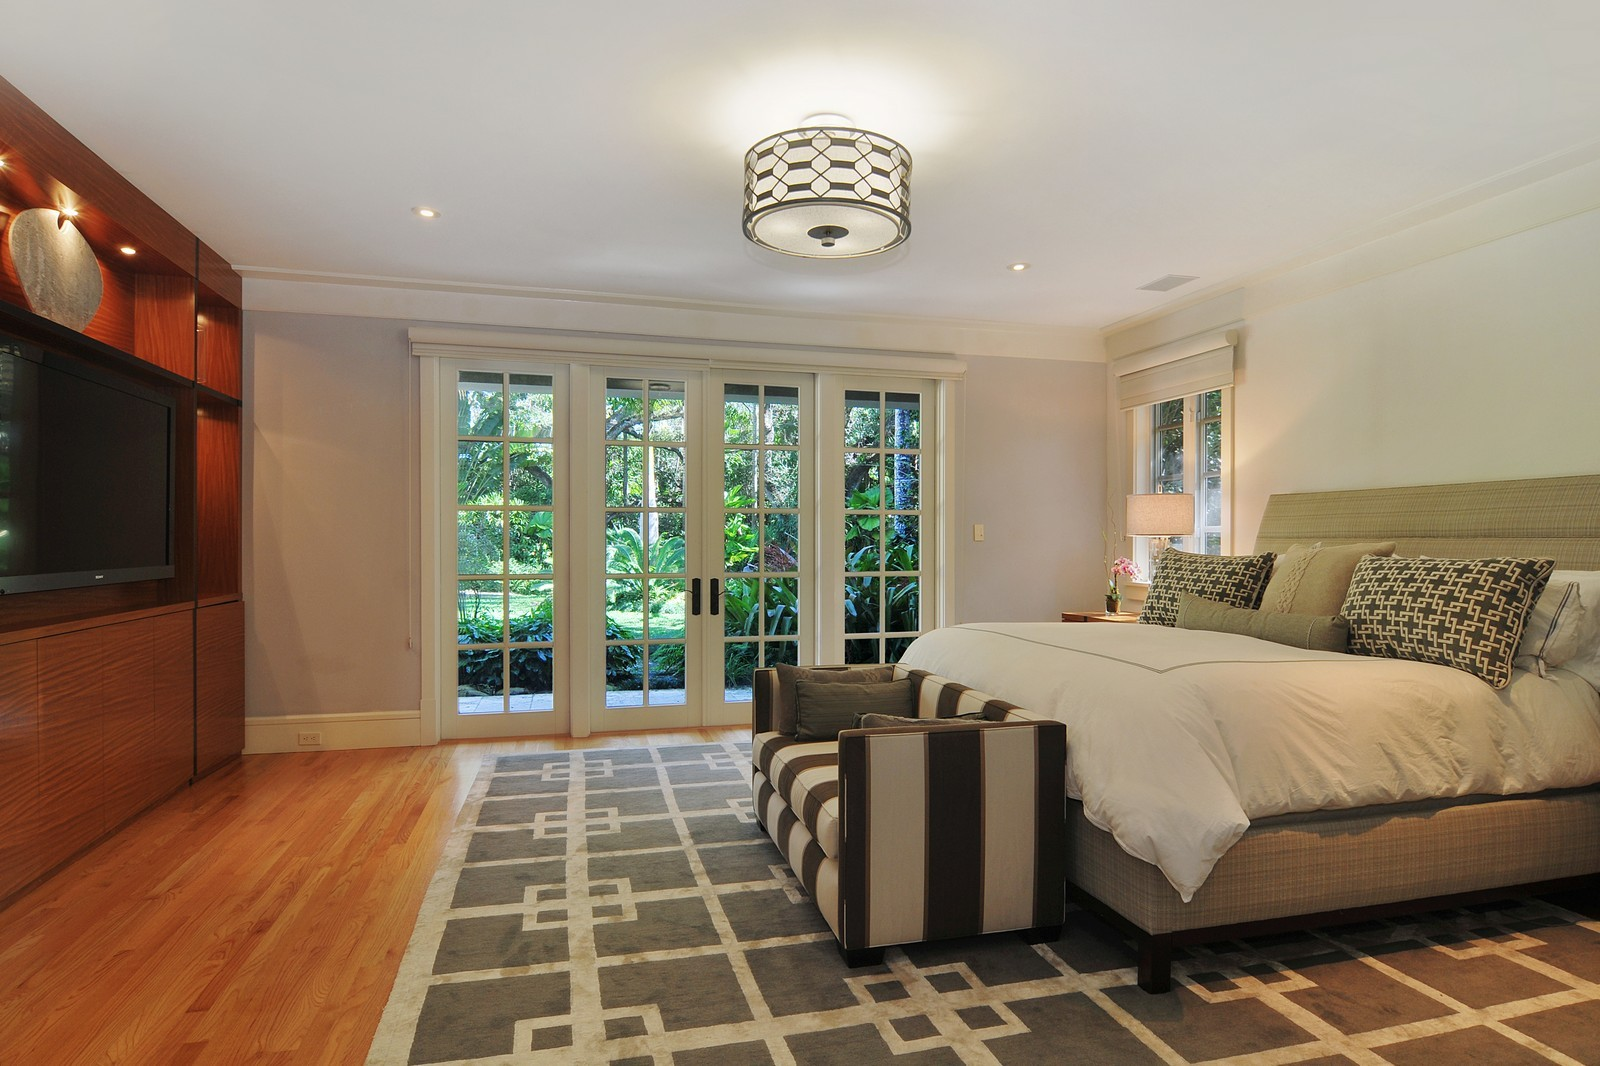 Real Estate Photography - 10225 Coral Creek Rd, Coral Gables, FL, 33156 - Master Bedroom